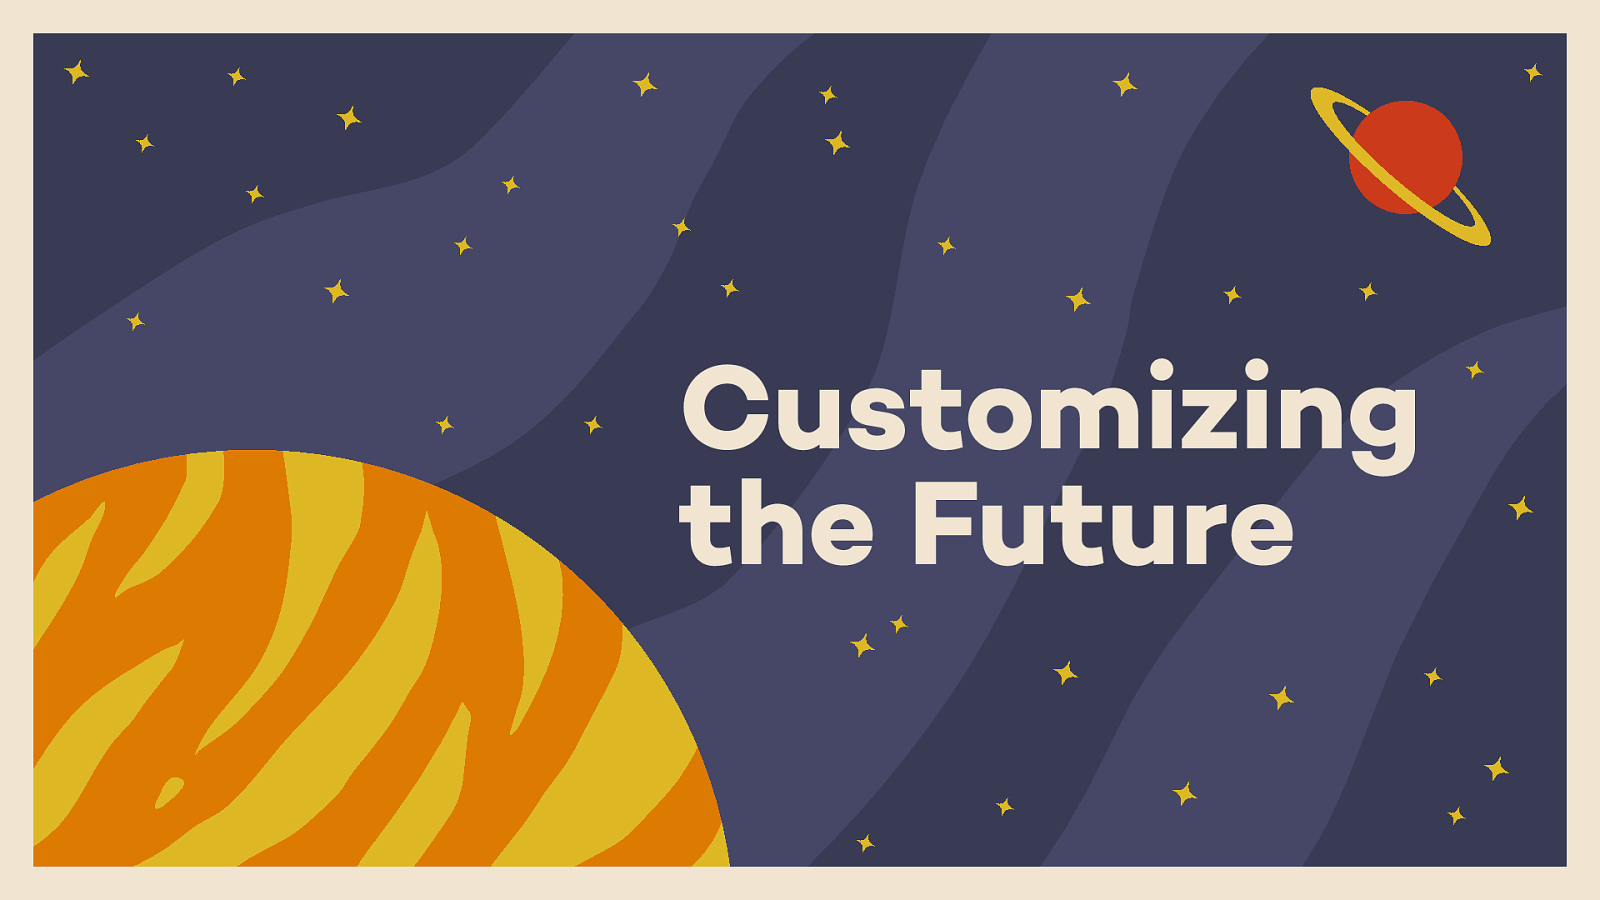 Customizing the Future